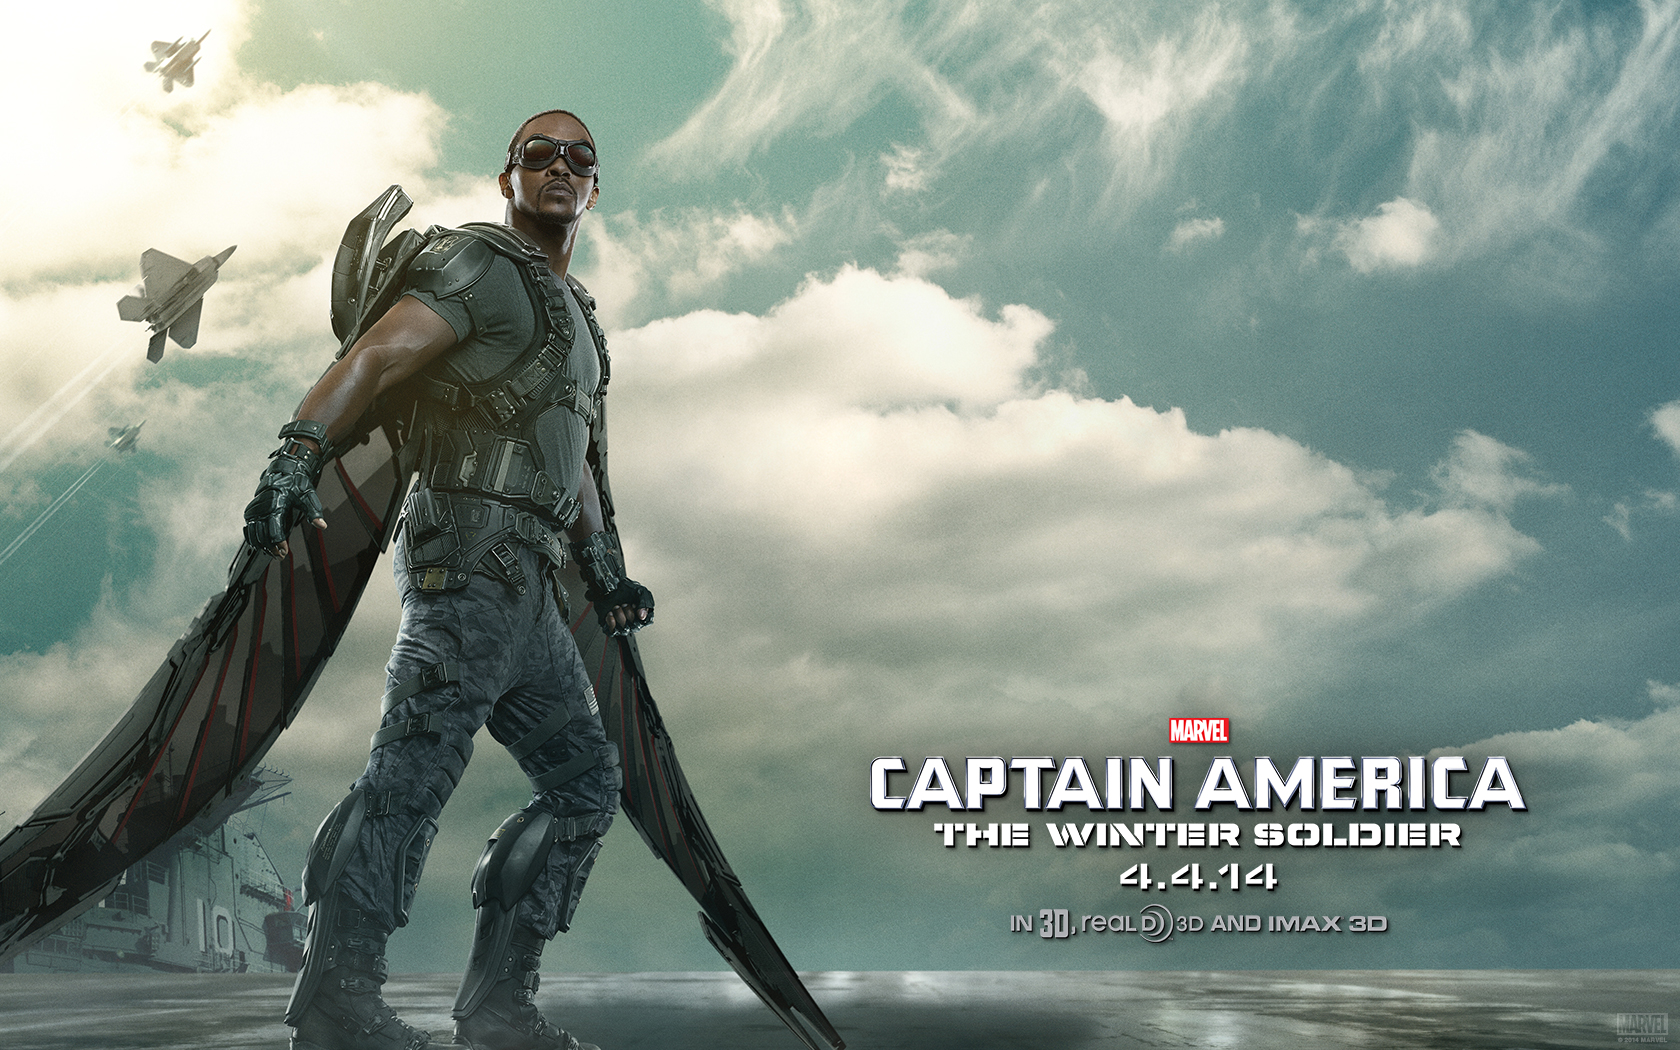 Anthony-Mackie-as-The-Falcon-–-Captain-America-The-Winter-Soldier-wallpaper-wpc5802188